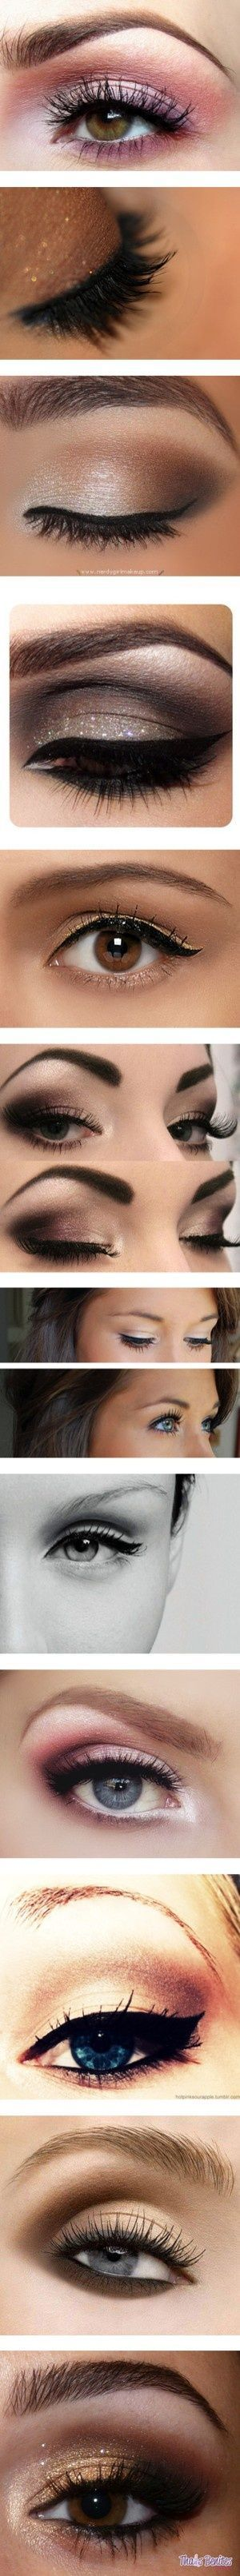 eye makeup :) @ The Beauty ThesisThe Beauty Thesis: